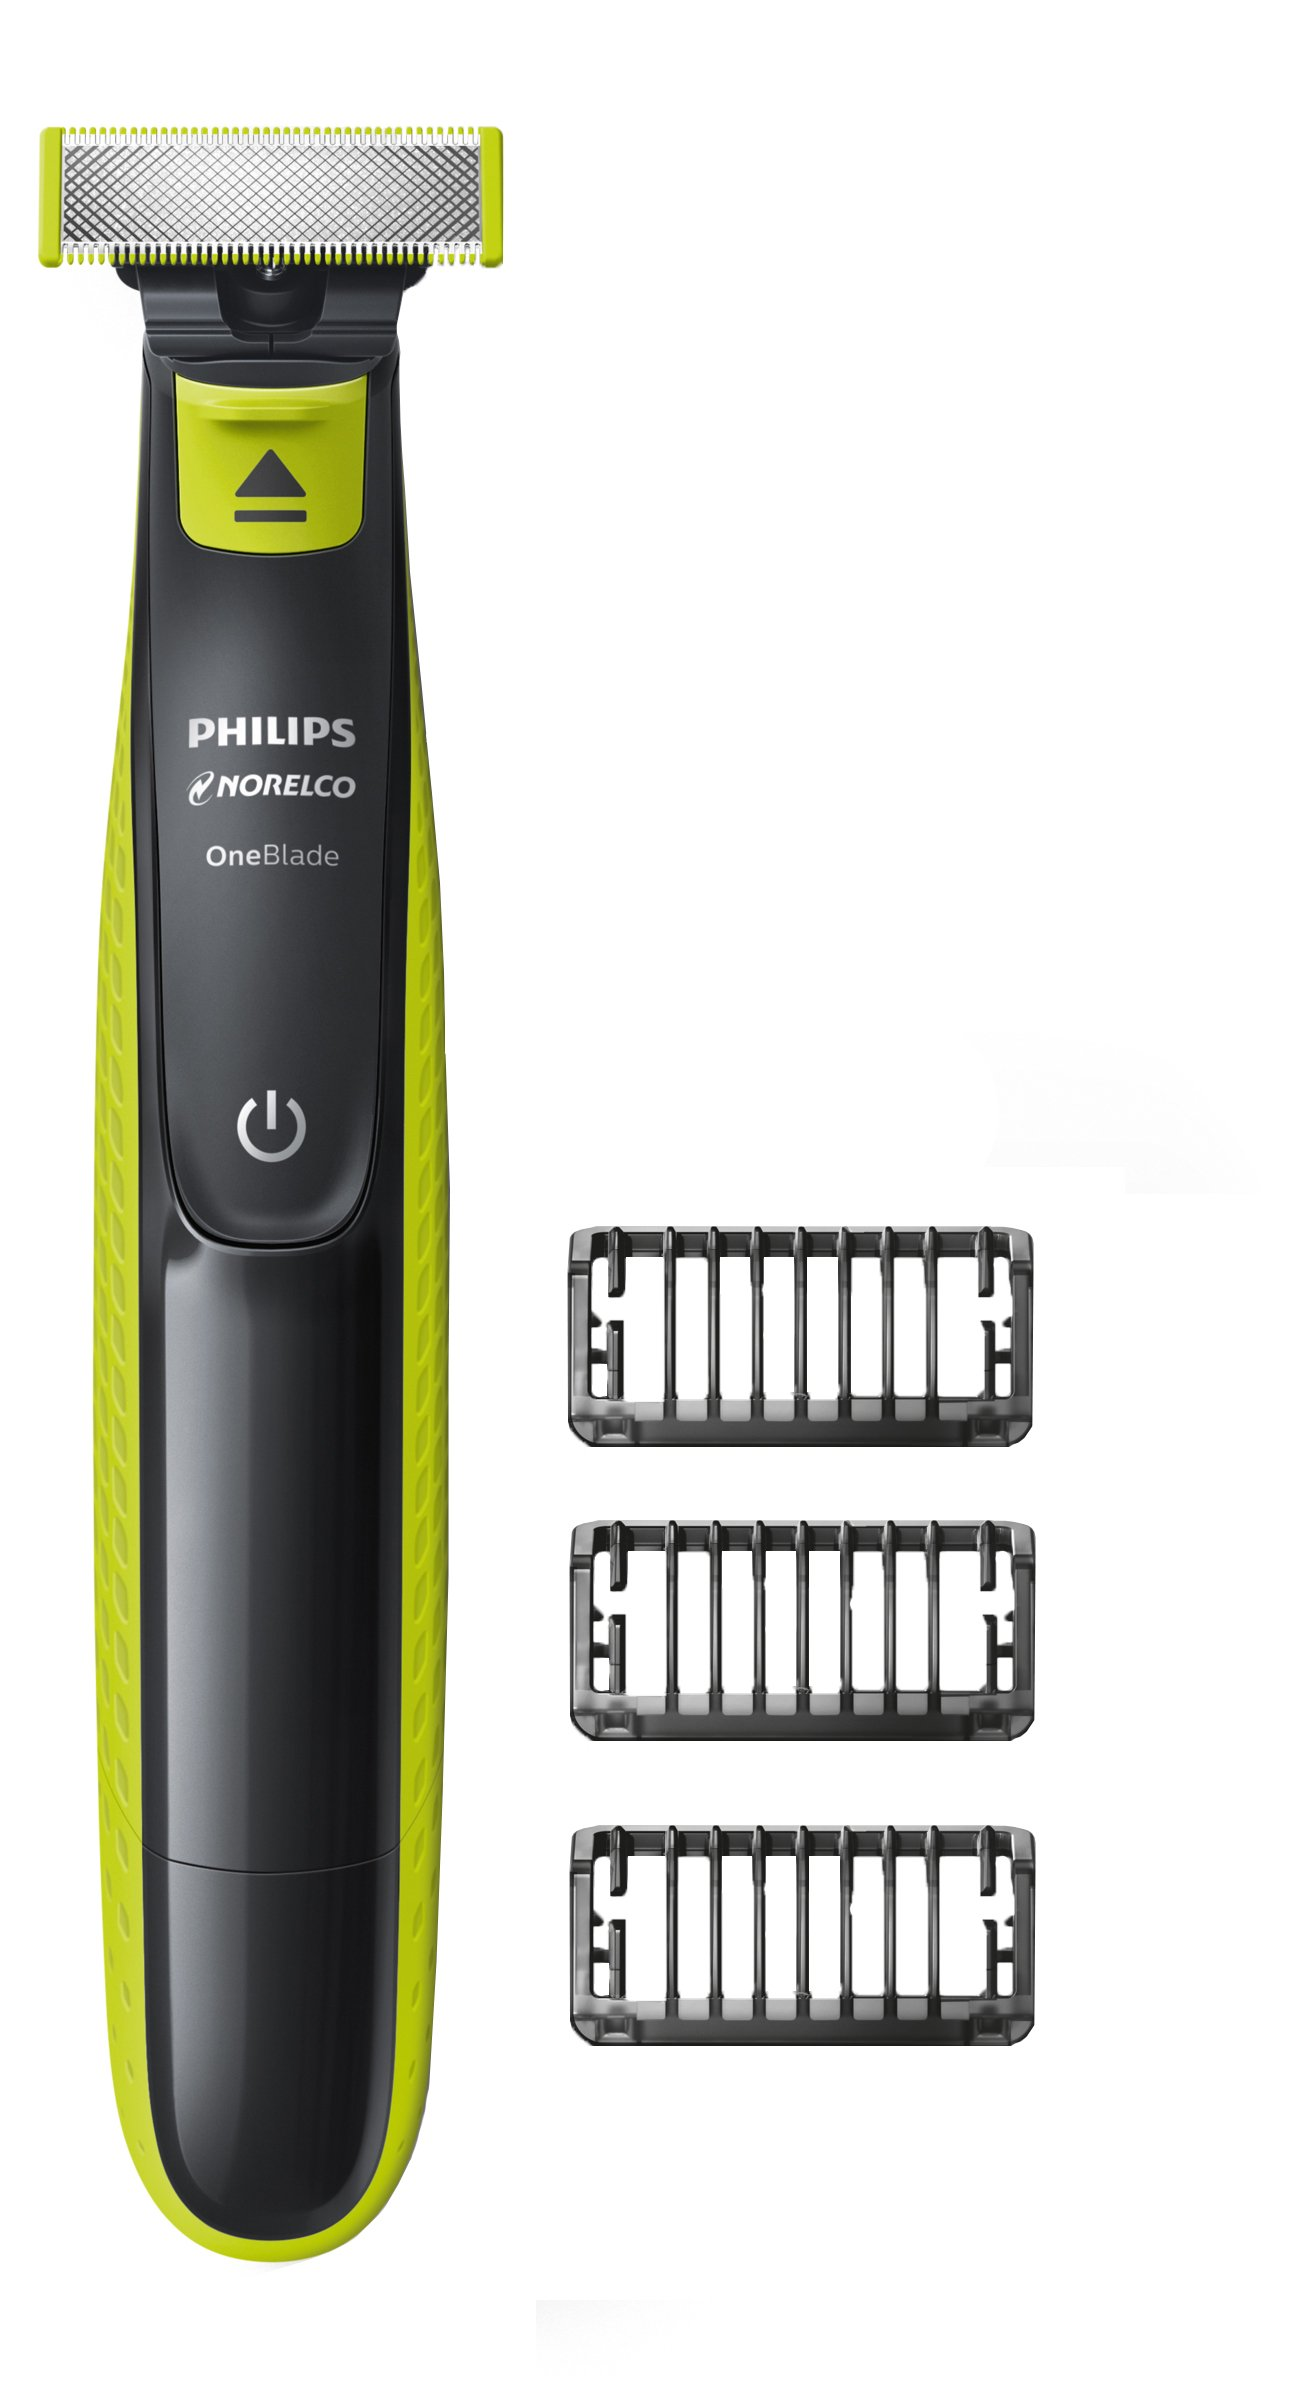 Philips Norelco OneBlade hybrid electric trimmer and shaver, FFP, QP2520/90 by Philips Norelco